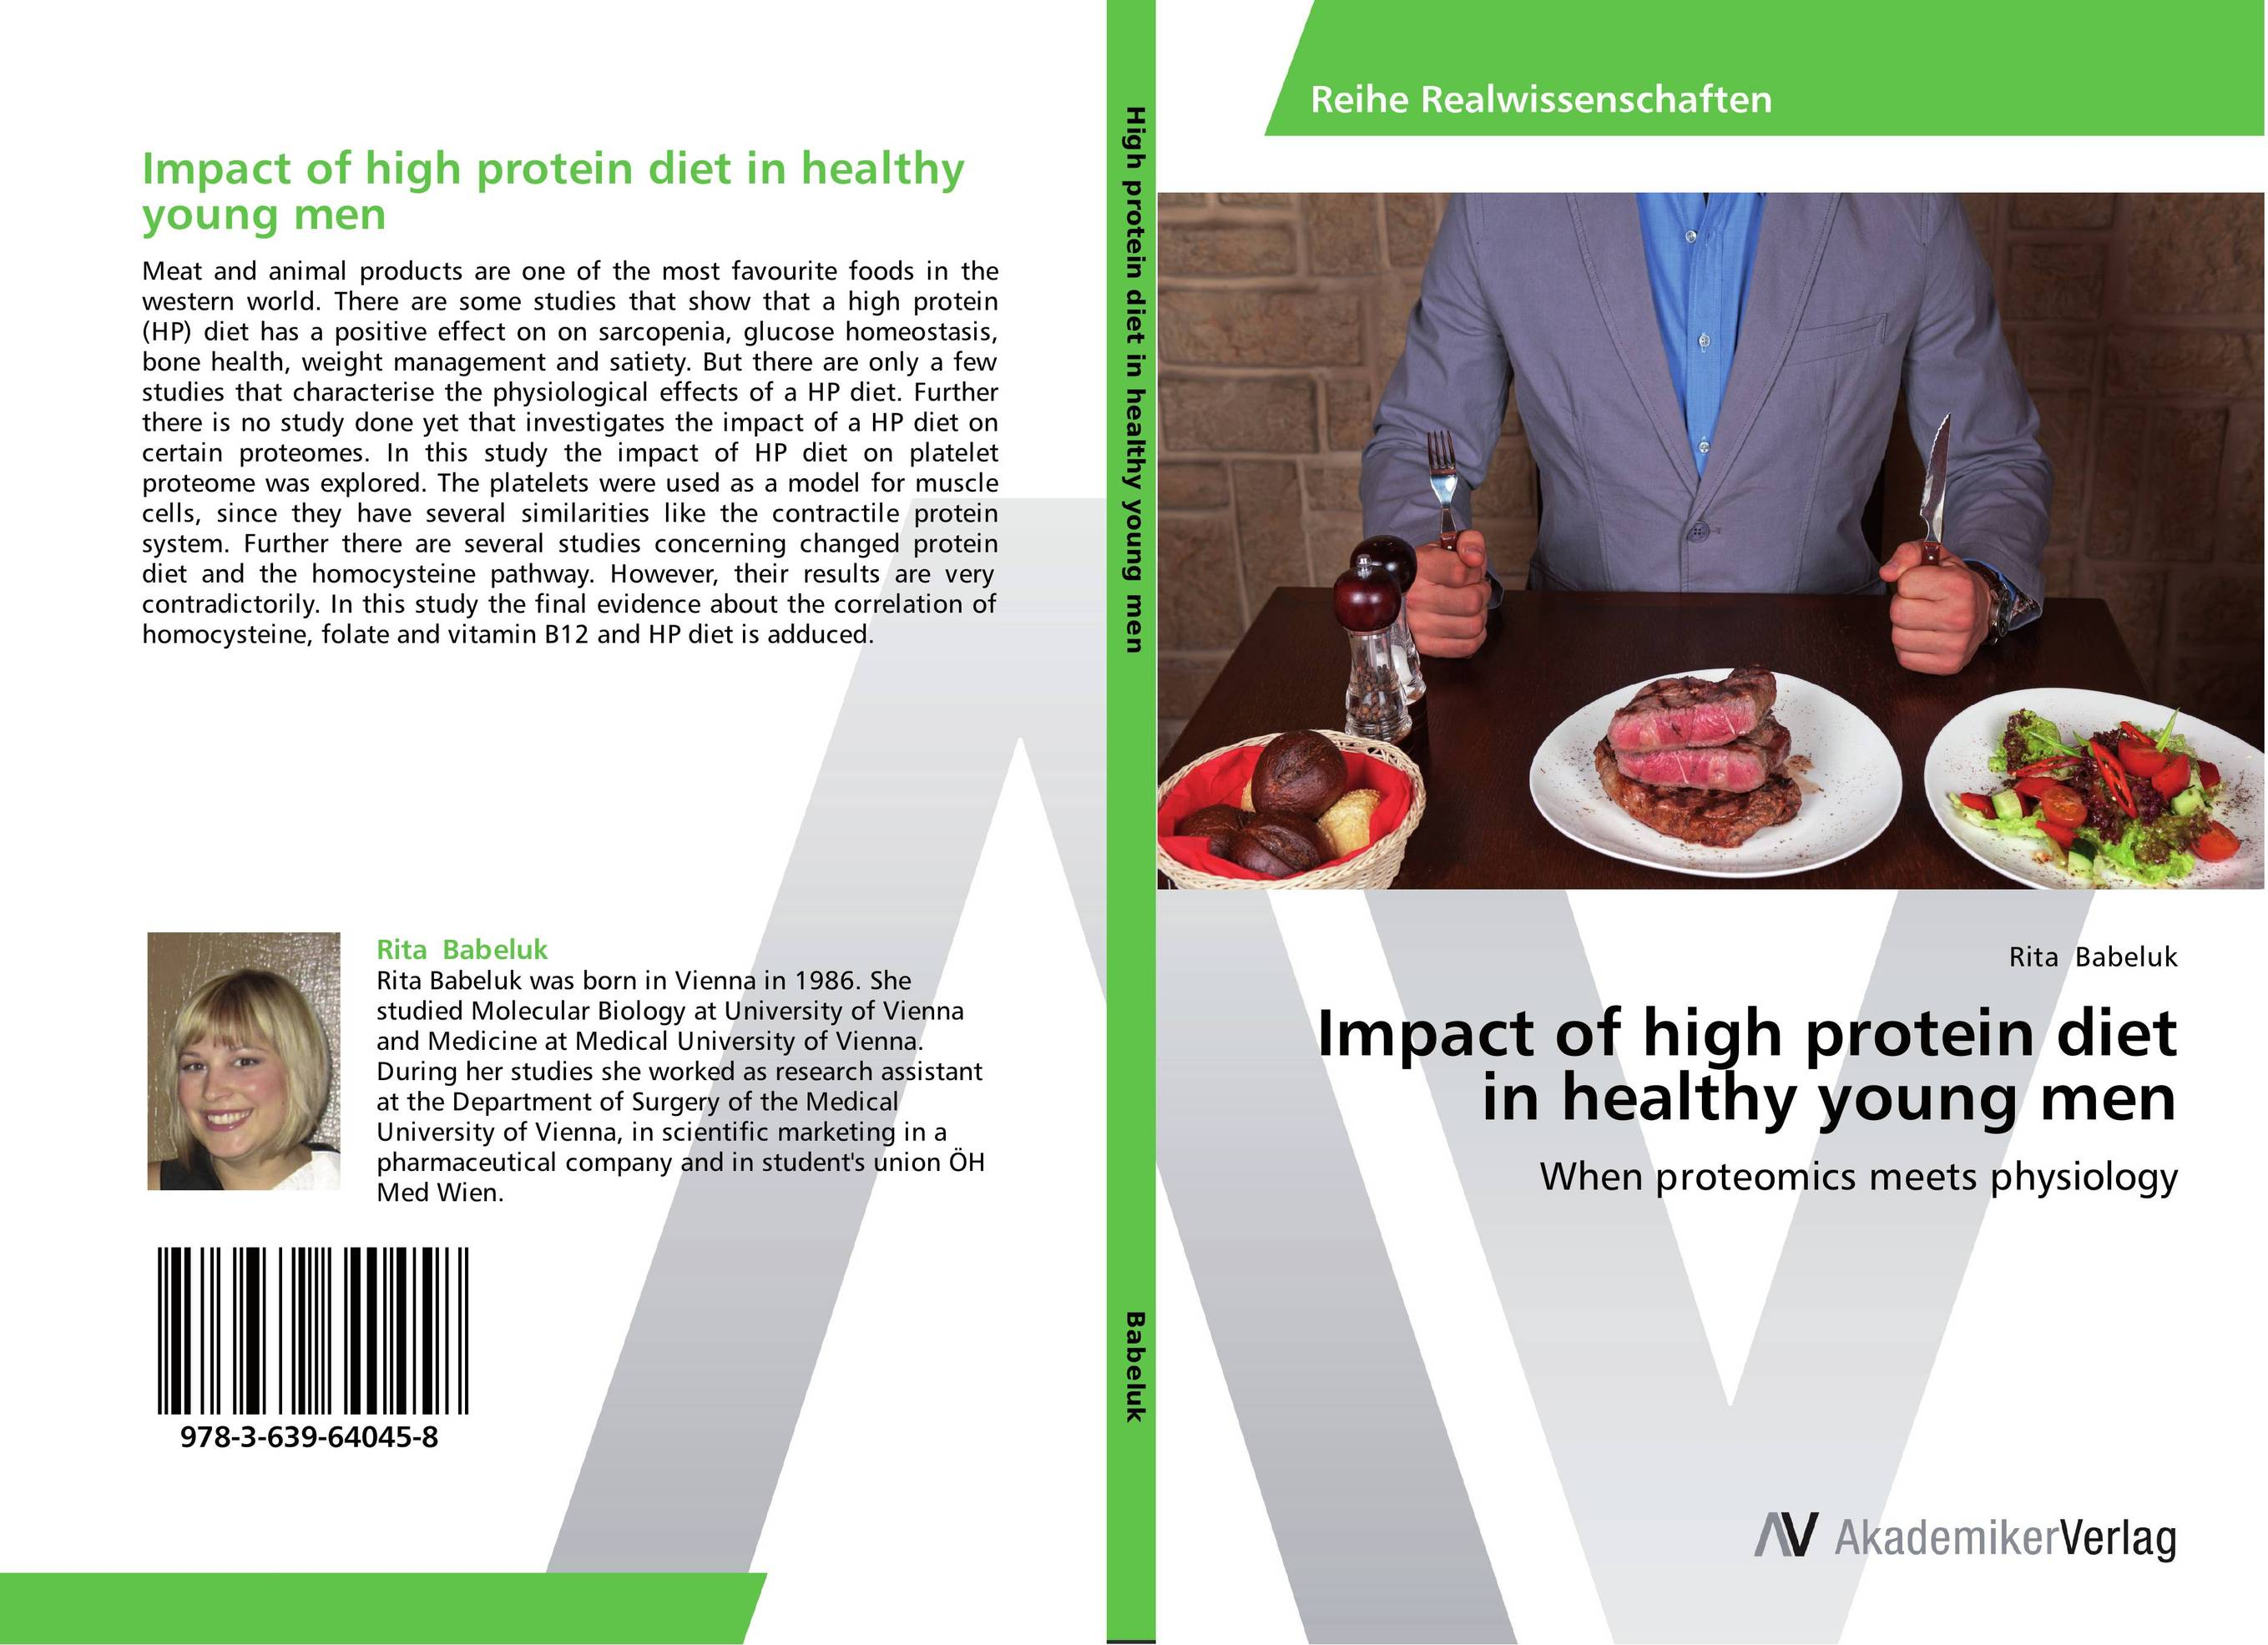 Impact of high protein diet in healthy young men vitamin d effect on calcium homeostasis in preeclampsia